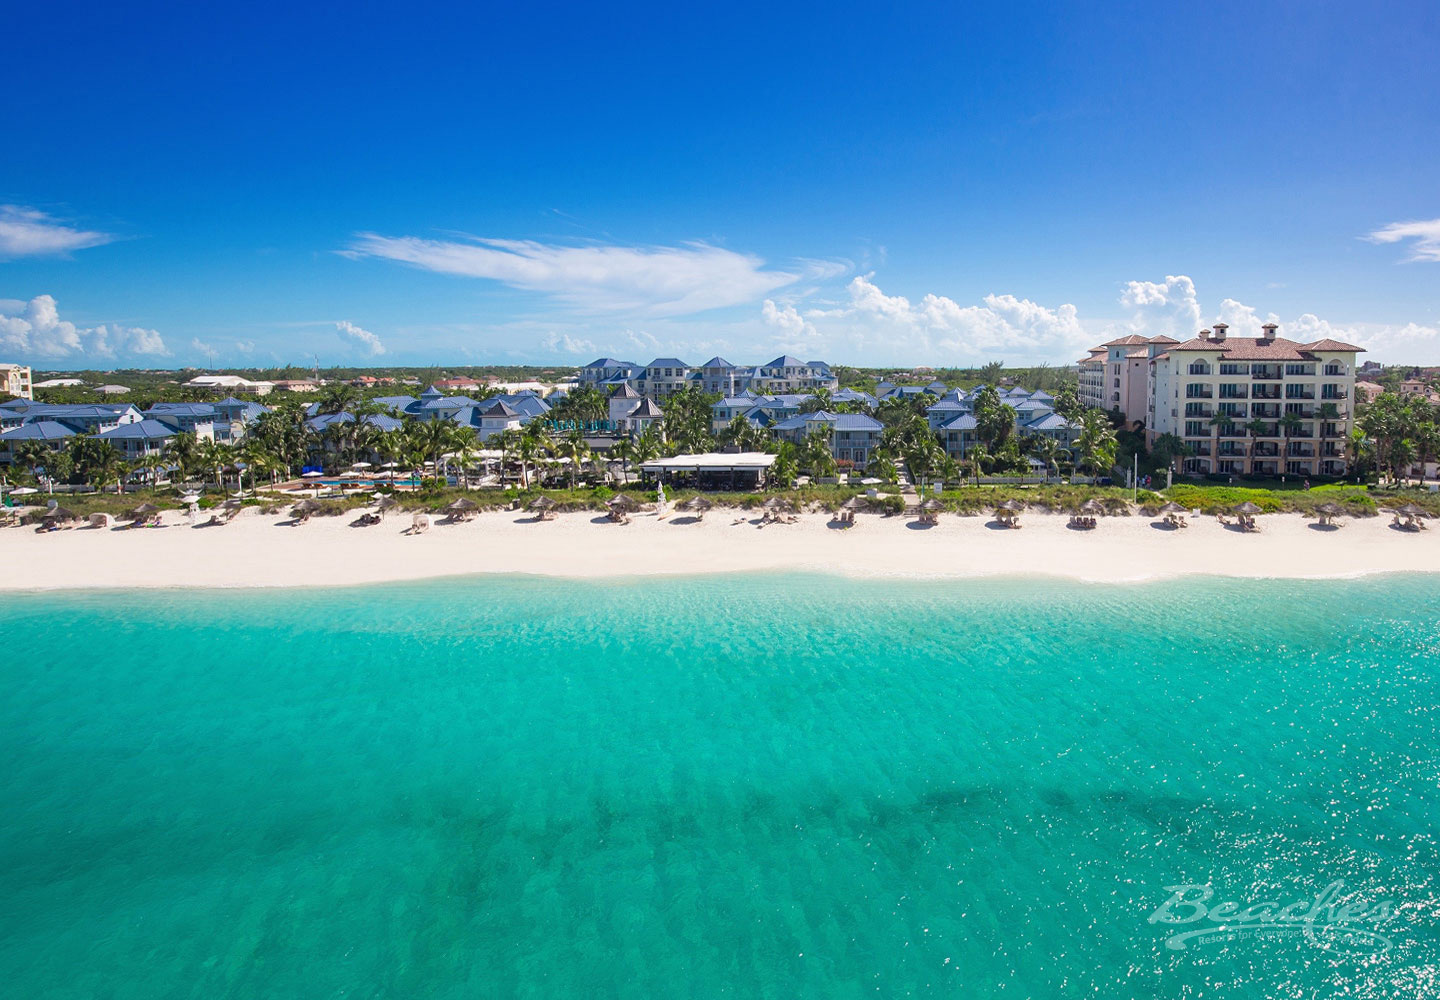 Travel Agency All-Inclusive Resort Beaches Turks and Caicos 154